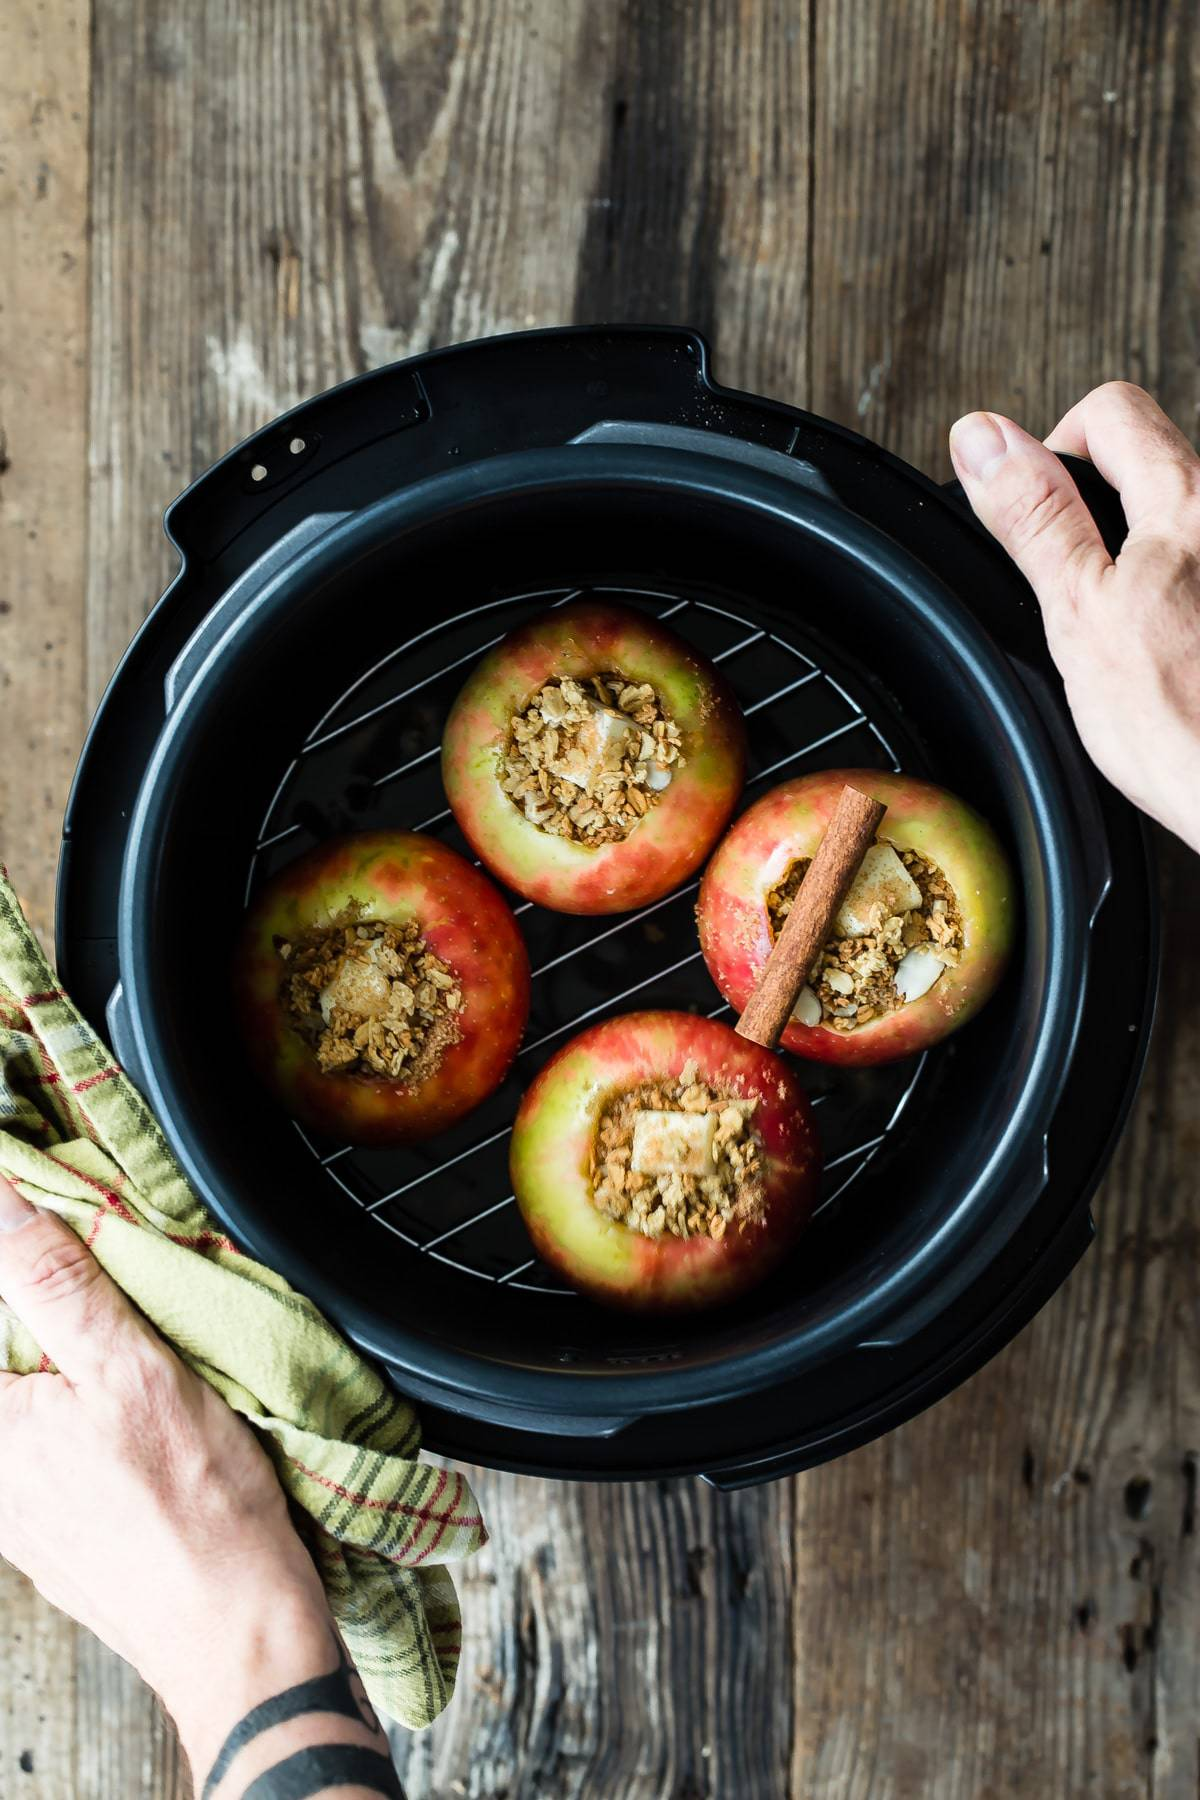 baked apples in the pressure cooker